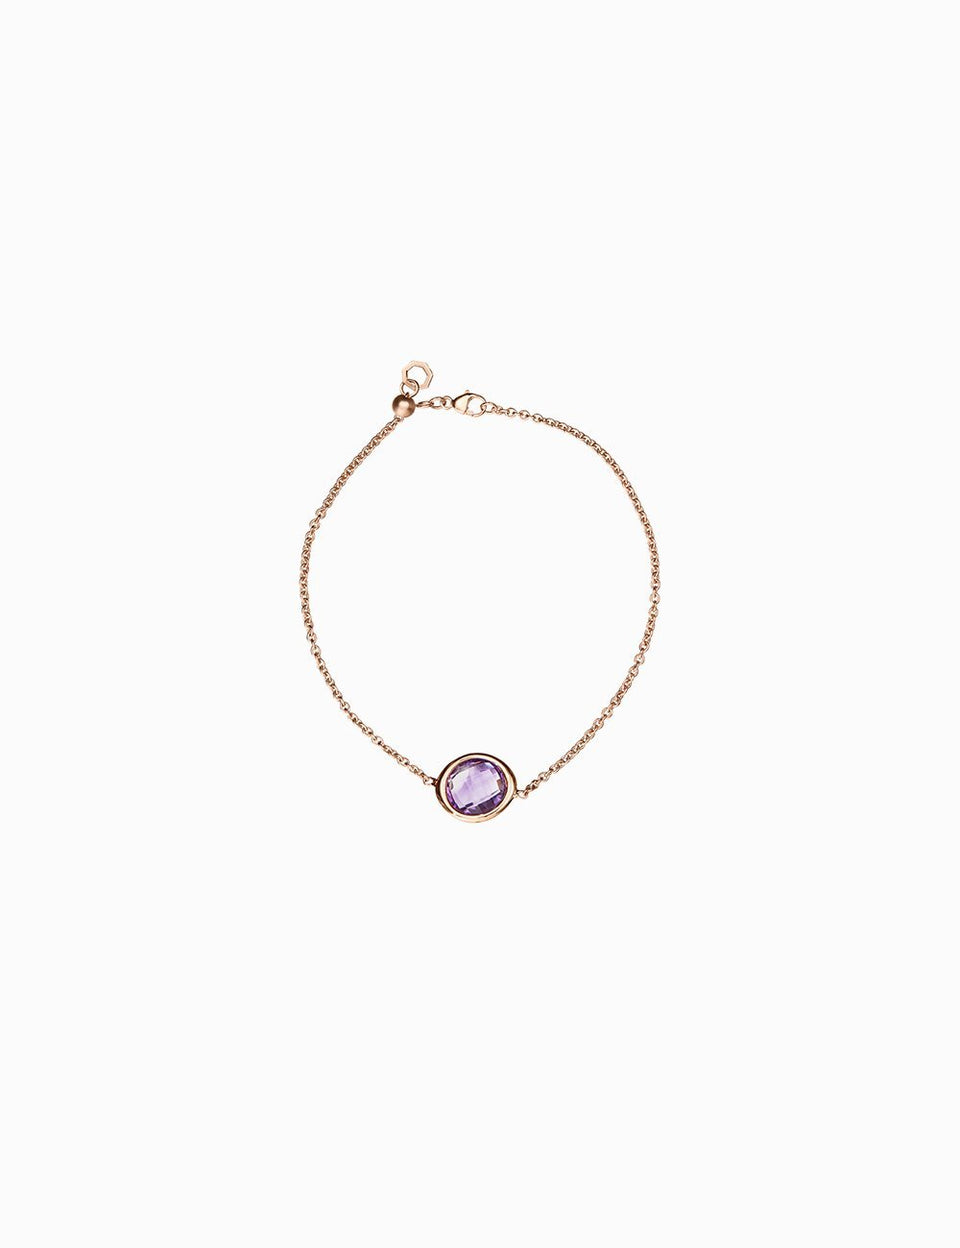 Roosik&Co - Blossom Bud Bracelet- Yellow Gold and Granet